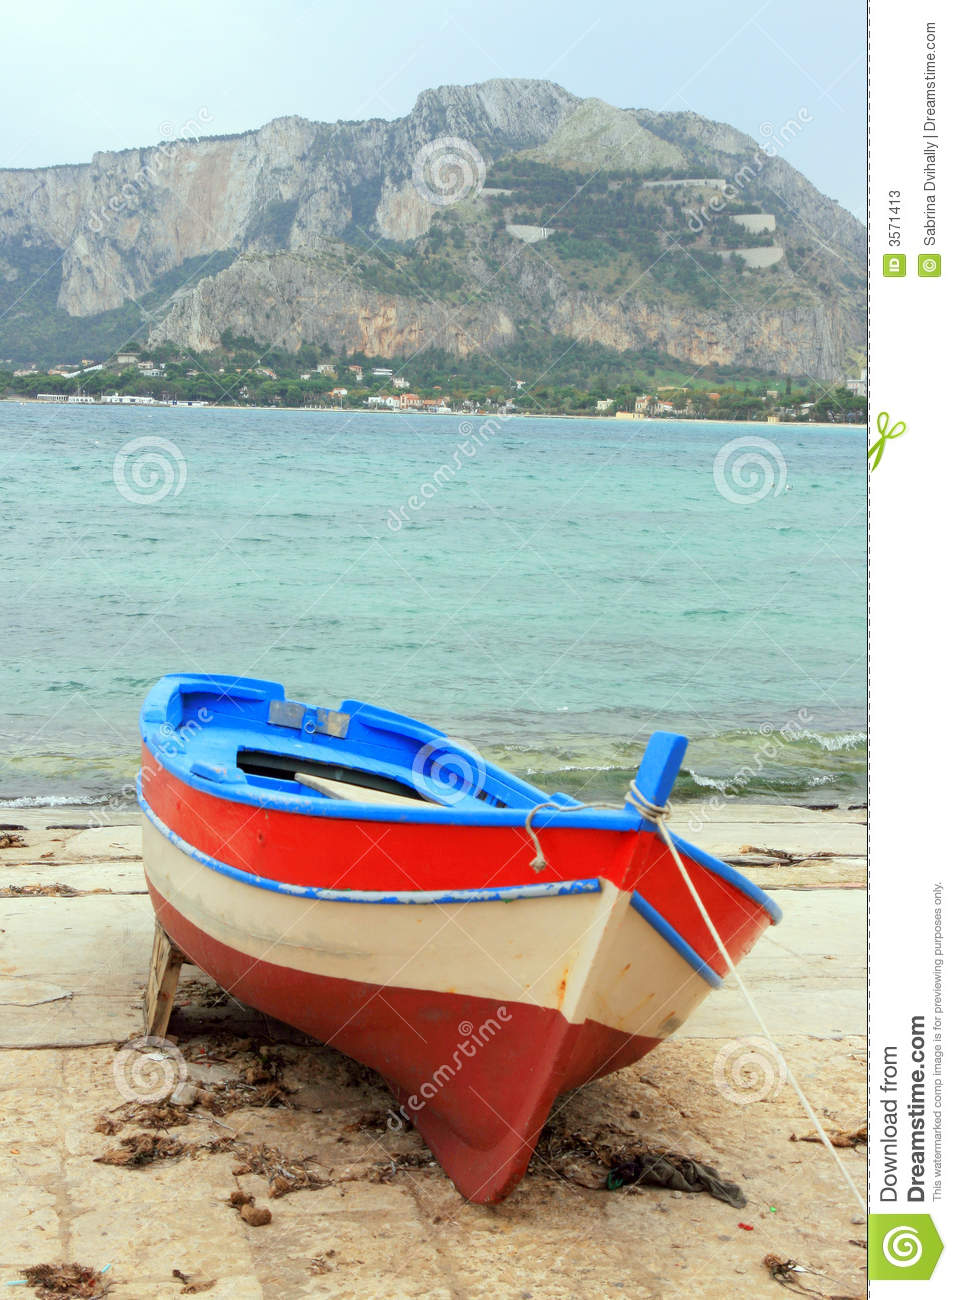 Fishing Boat On The Shore Stock Photos - Image: 3571413